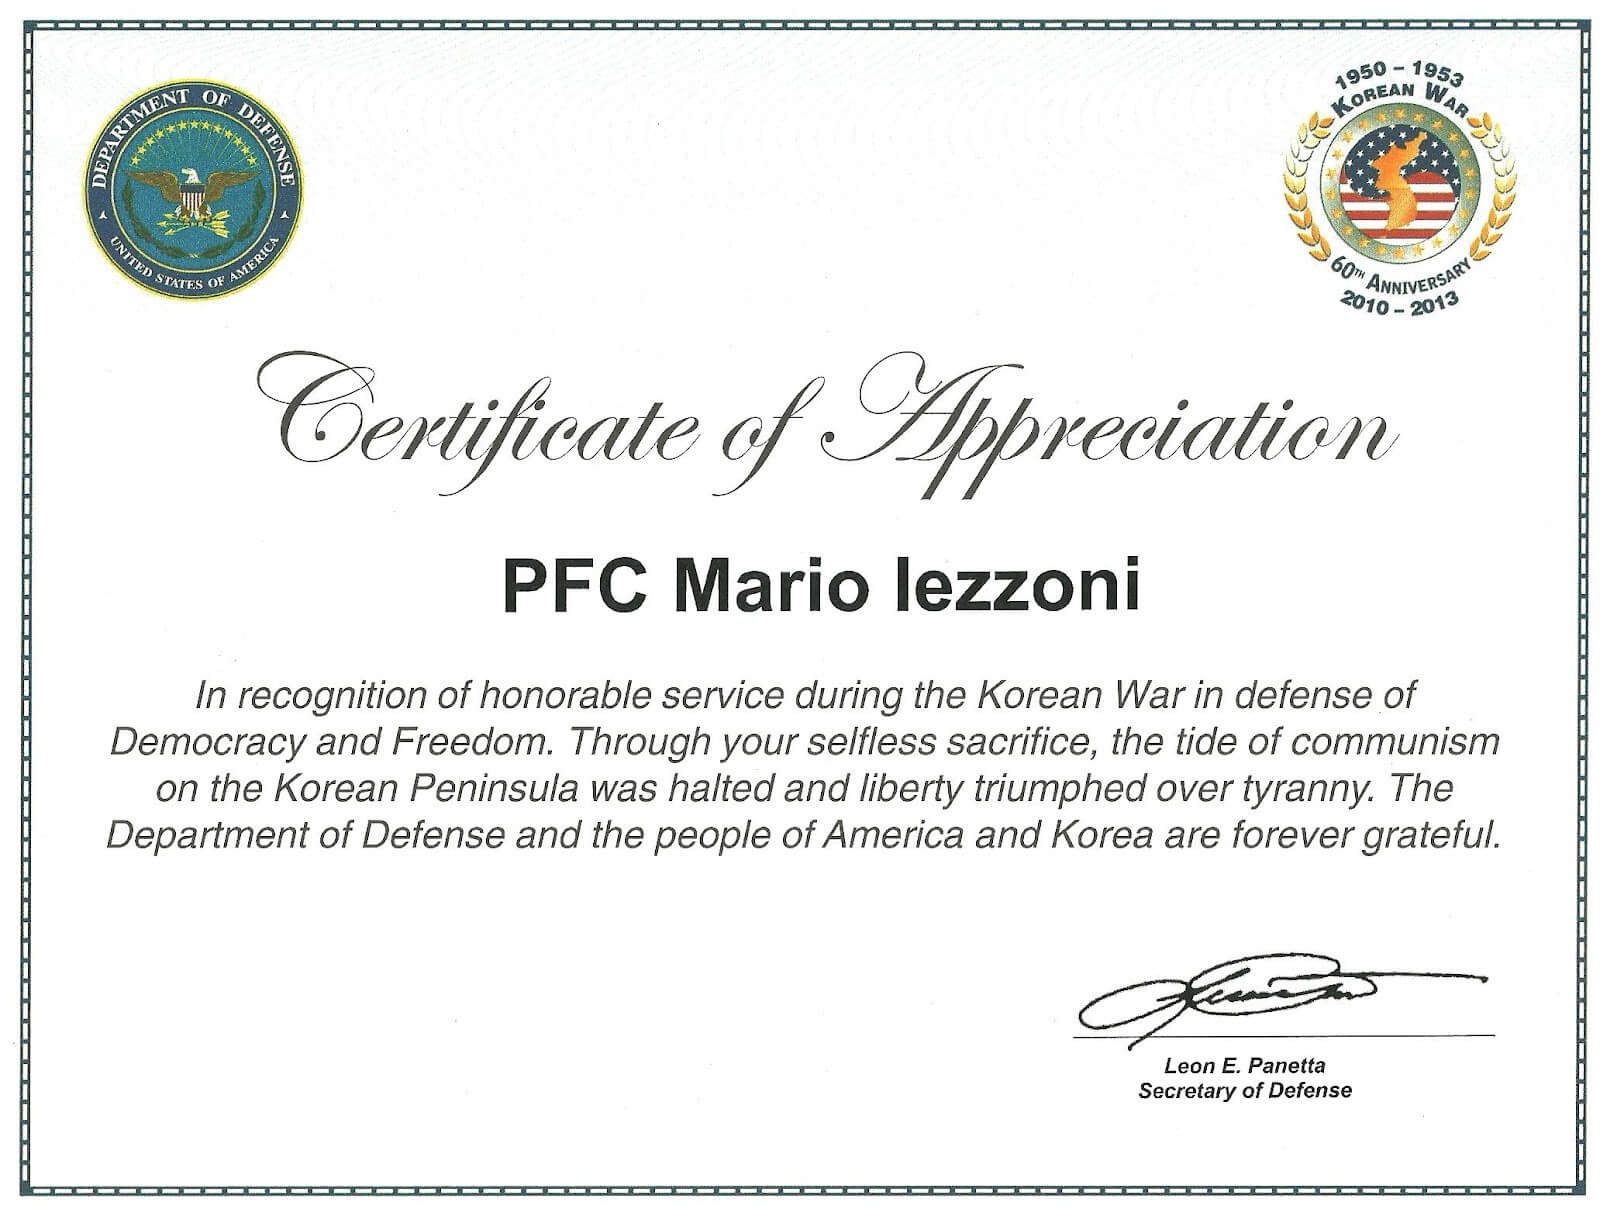 Veteran Certificate Of Appreciation Printable Related Pertaining To Army Certificate Of Appreciation Template